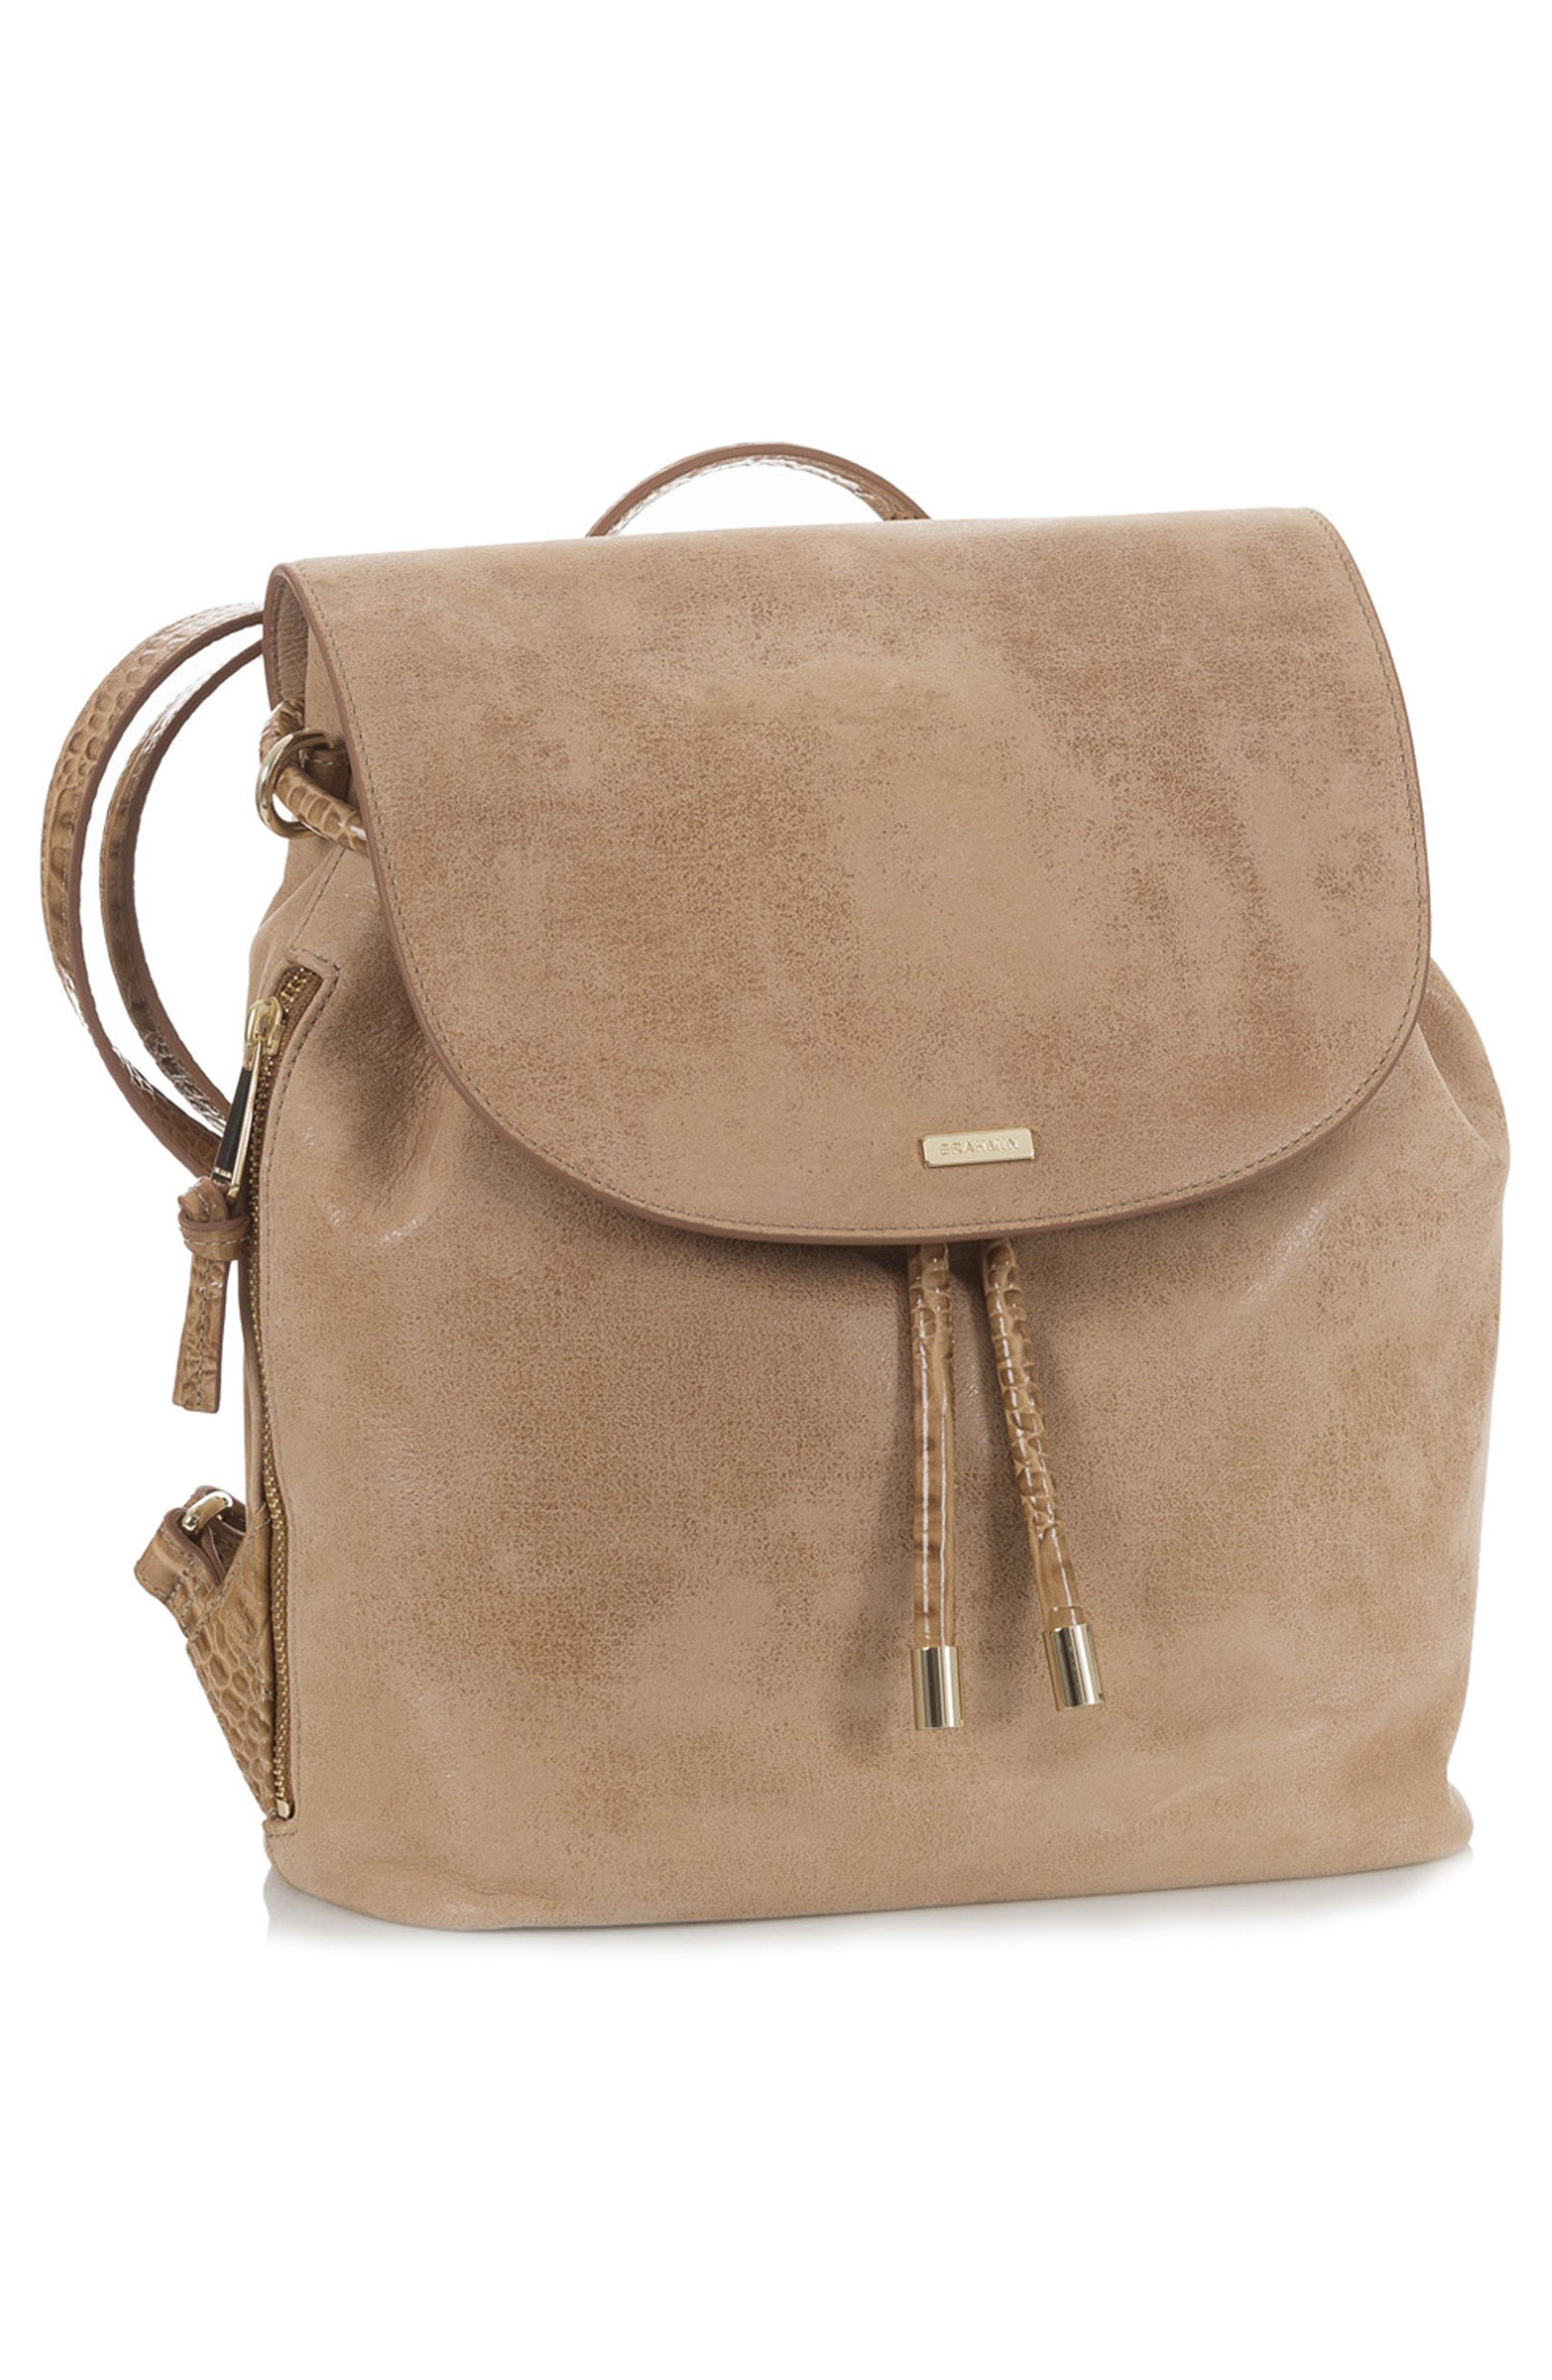 Josie Leather Backpack,                             Alternate thumbnail 4, color,                             200